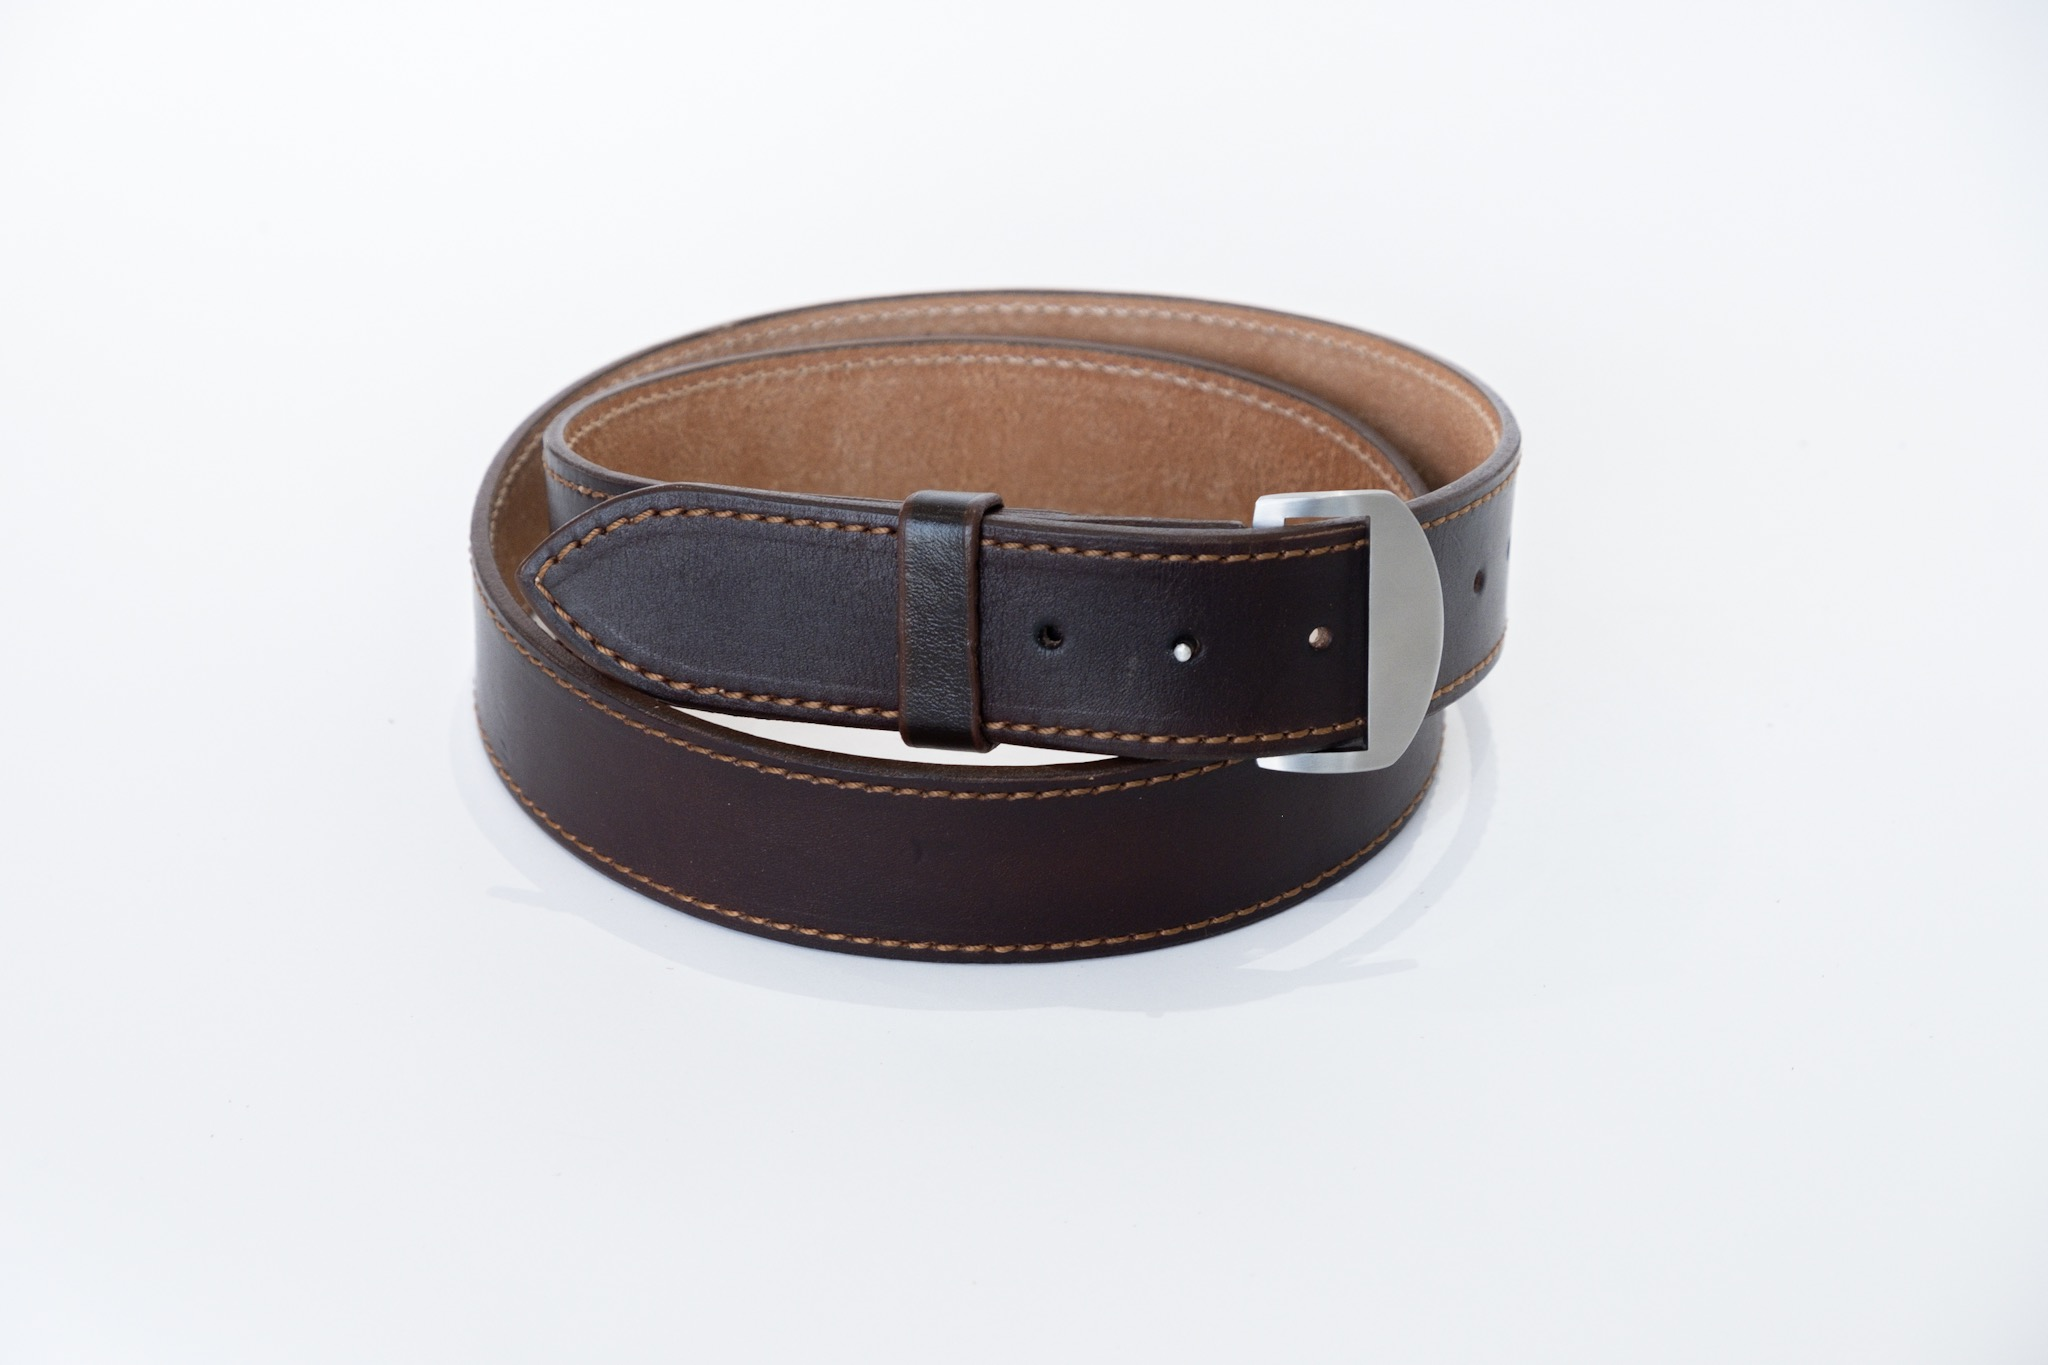 This is a special knife-buckle belt - the buckle doubles up as a knife for self-defence.